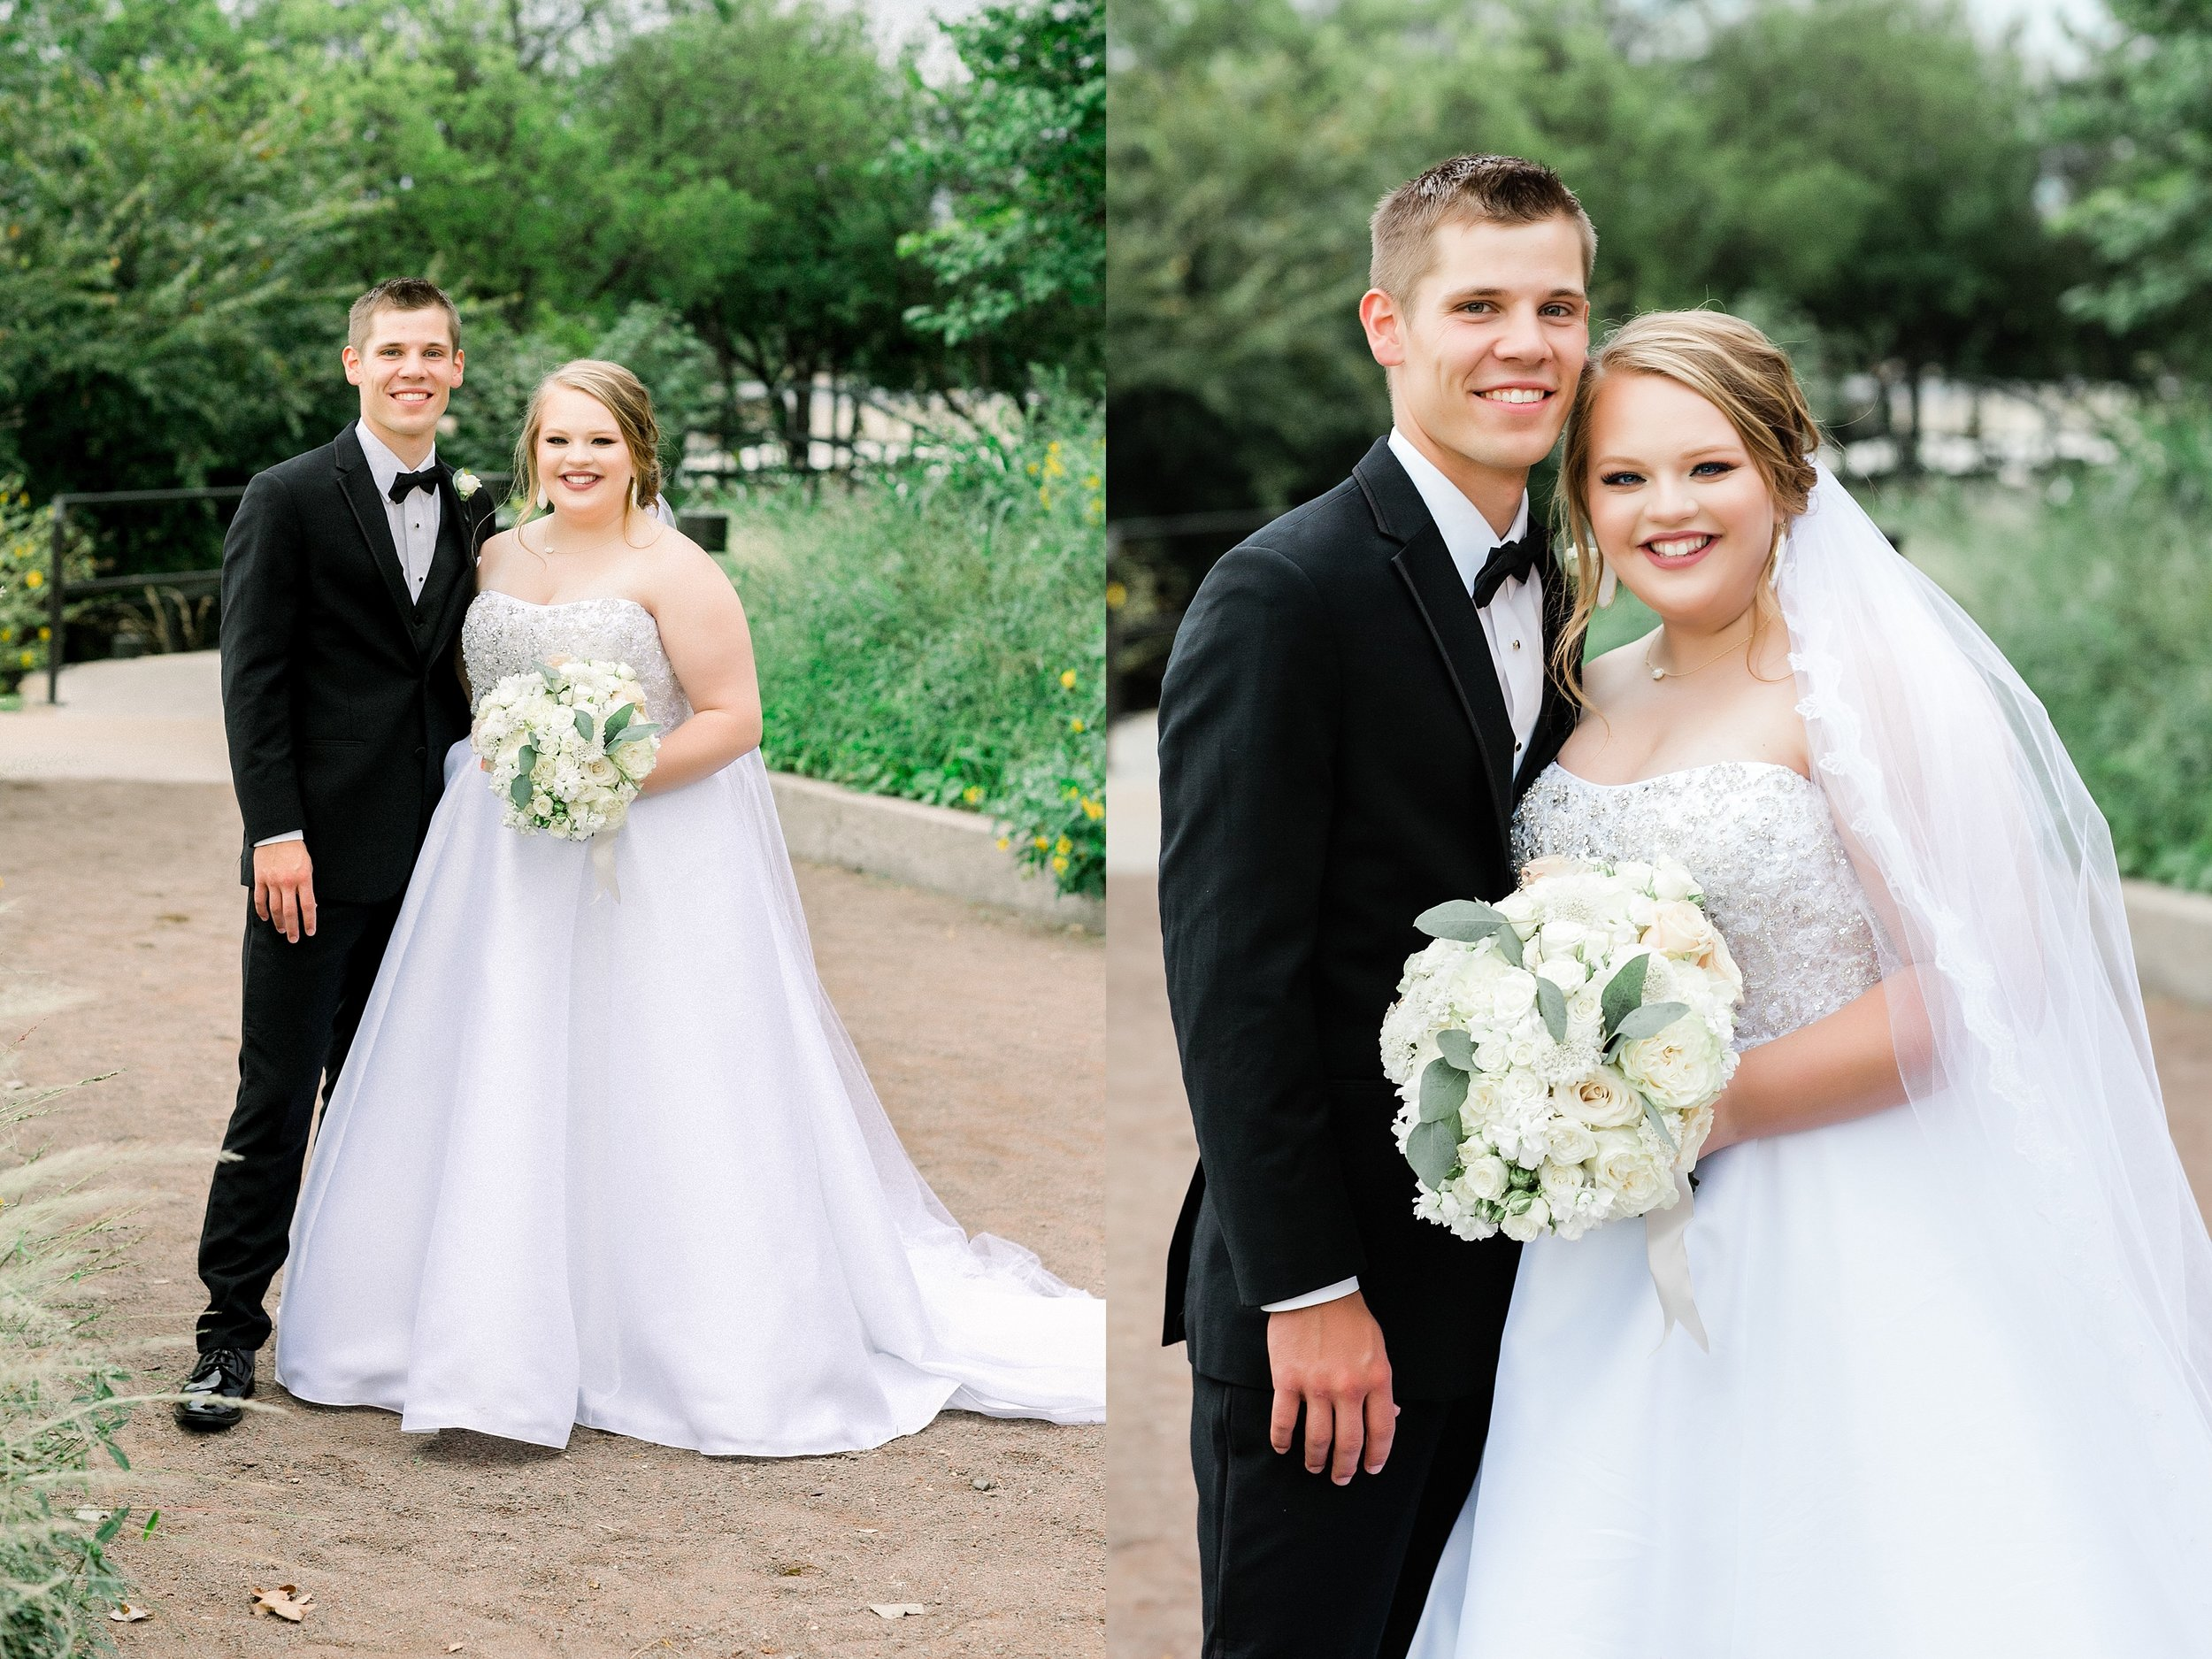 Ryanne-and-william-wedding-at-river-bend-nature-center-wichita-falls-texas-two-clever-chicks-0096.jpg